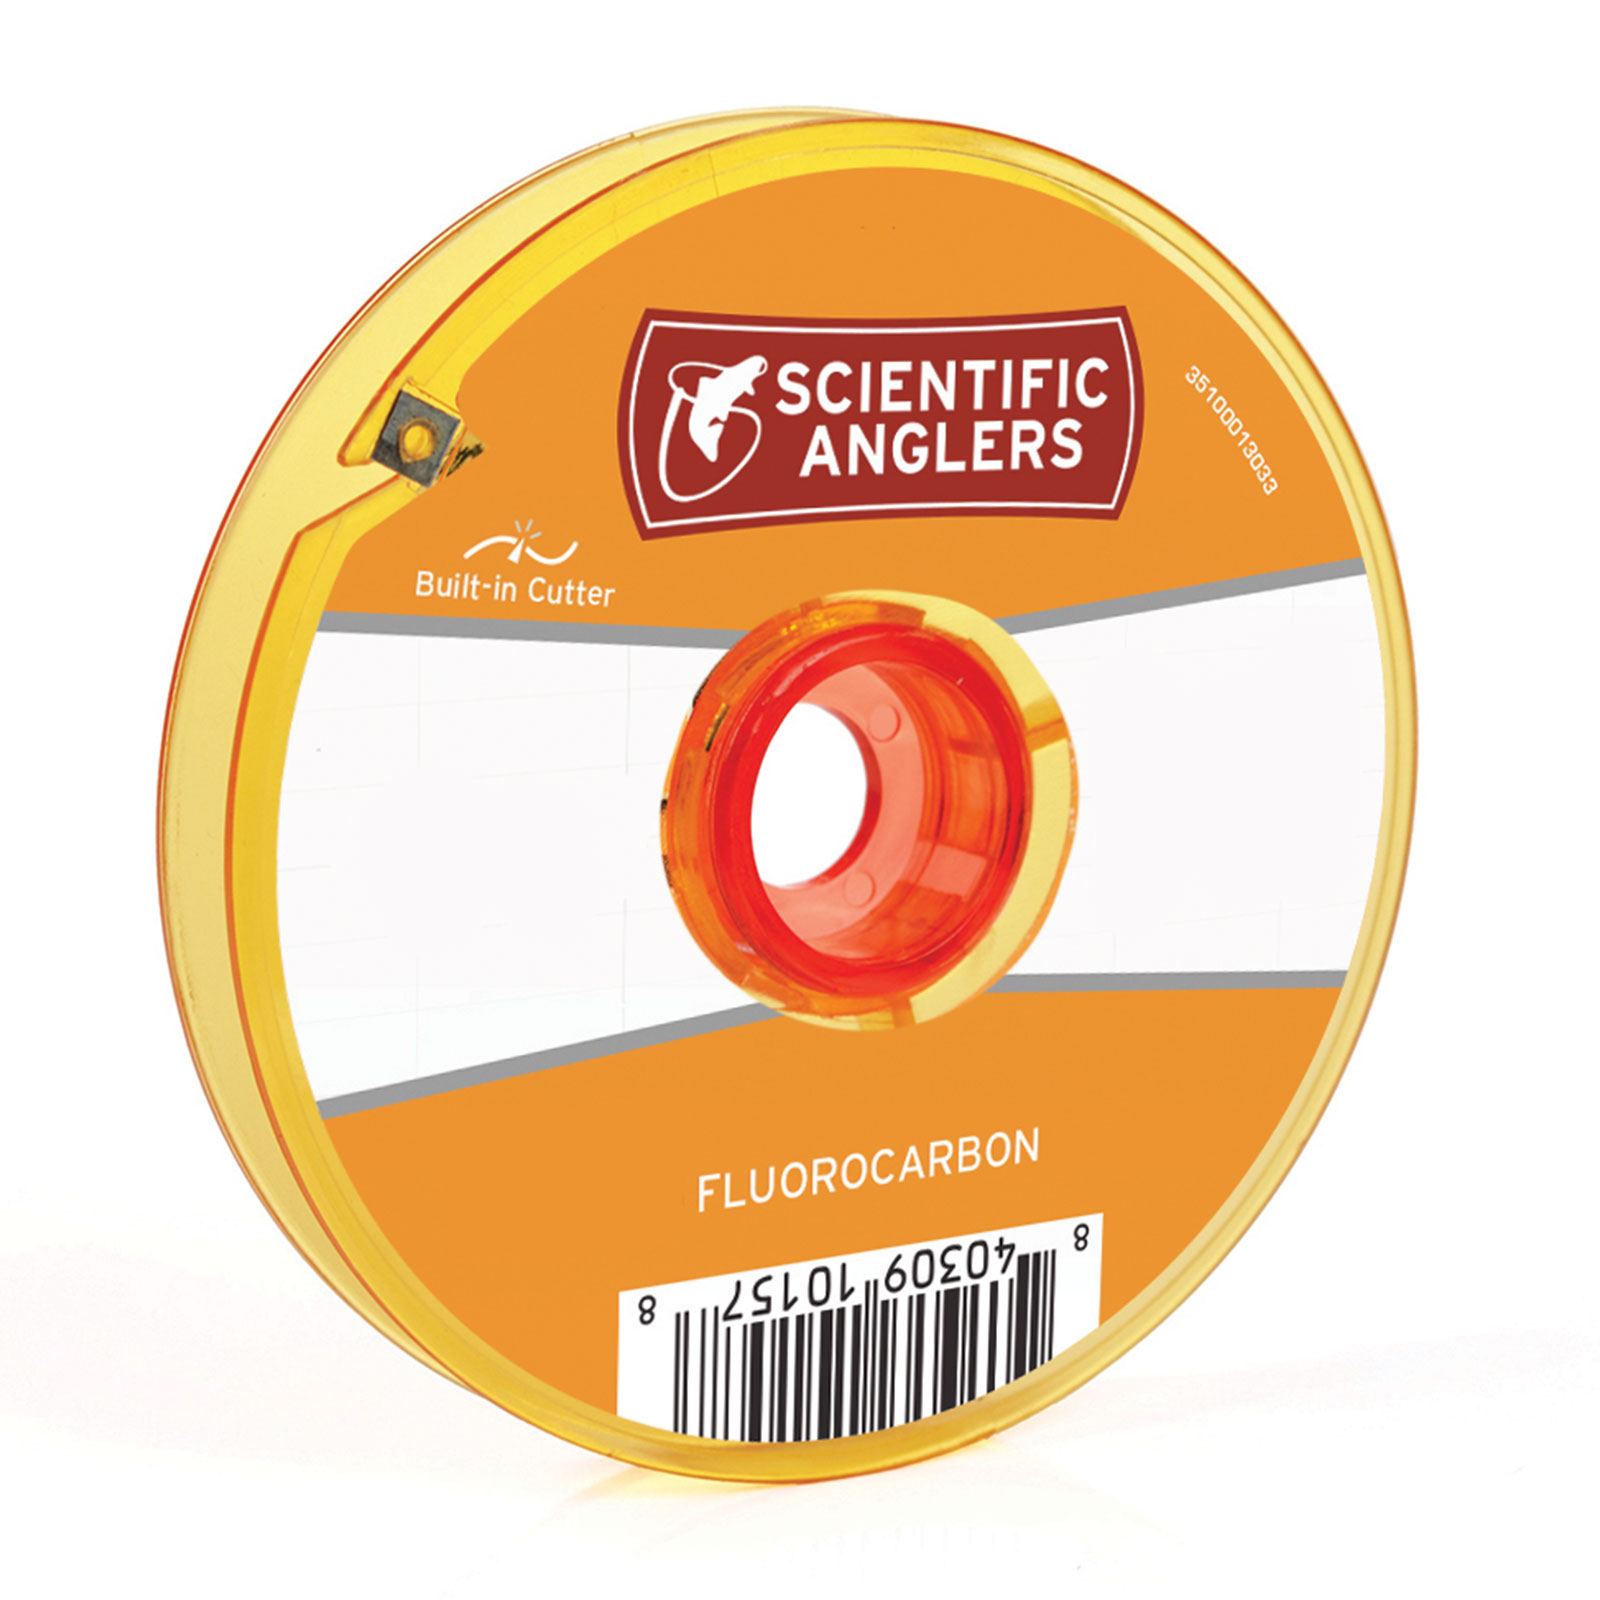 Scientific Anglers Premium Fluorocarbon Fly Fishing Tippet Spool With Cutter